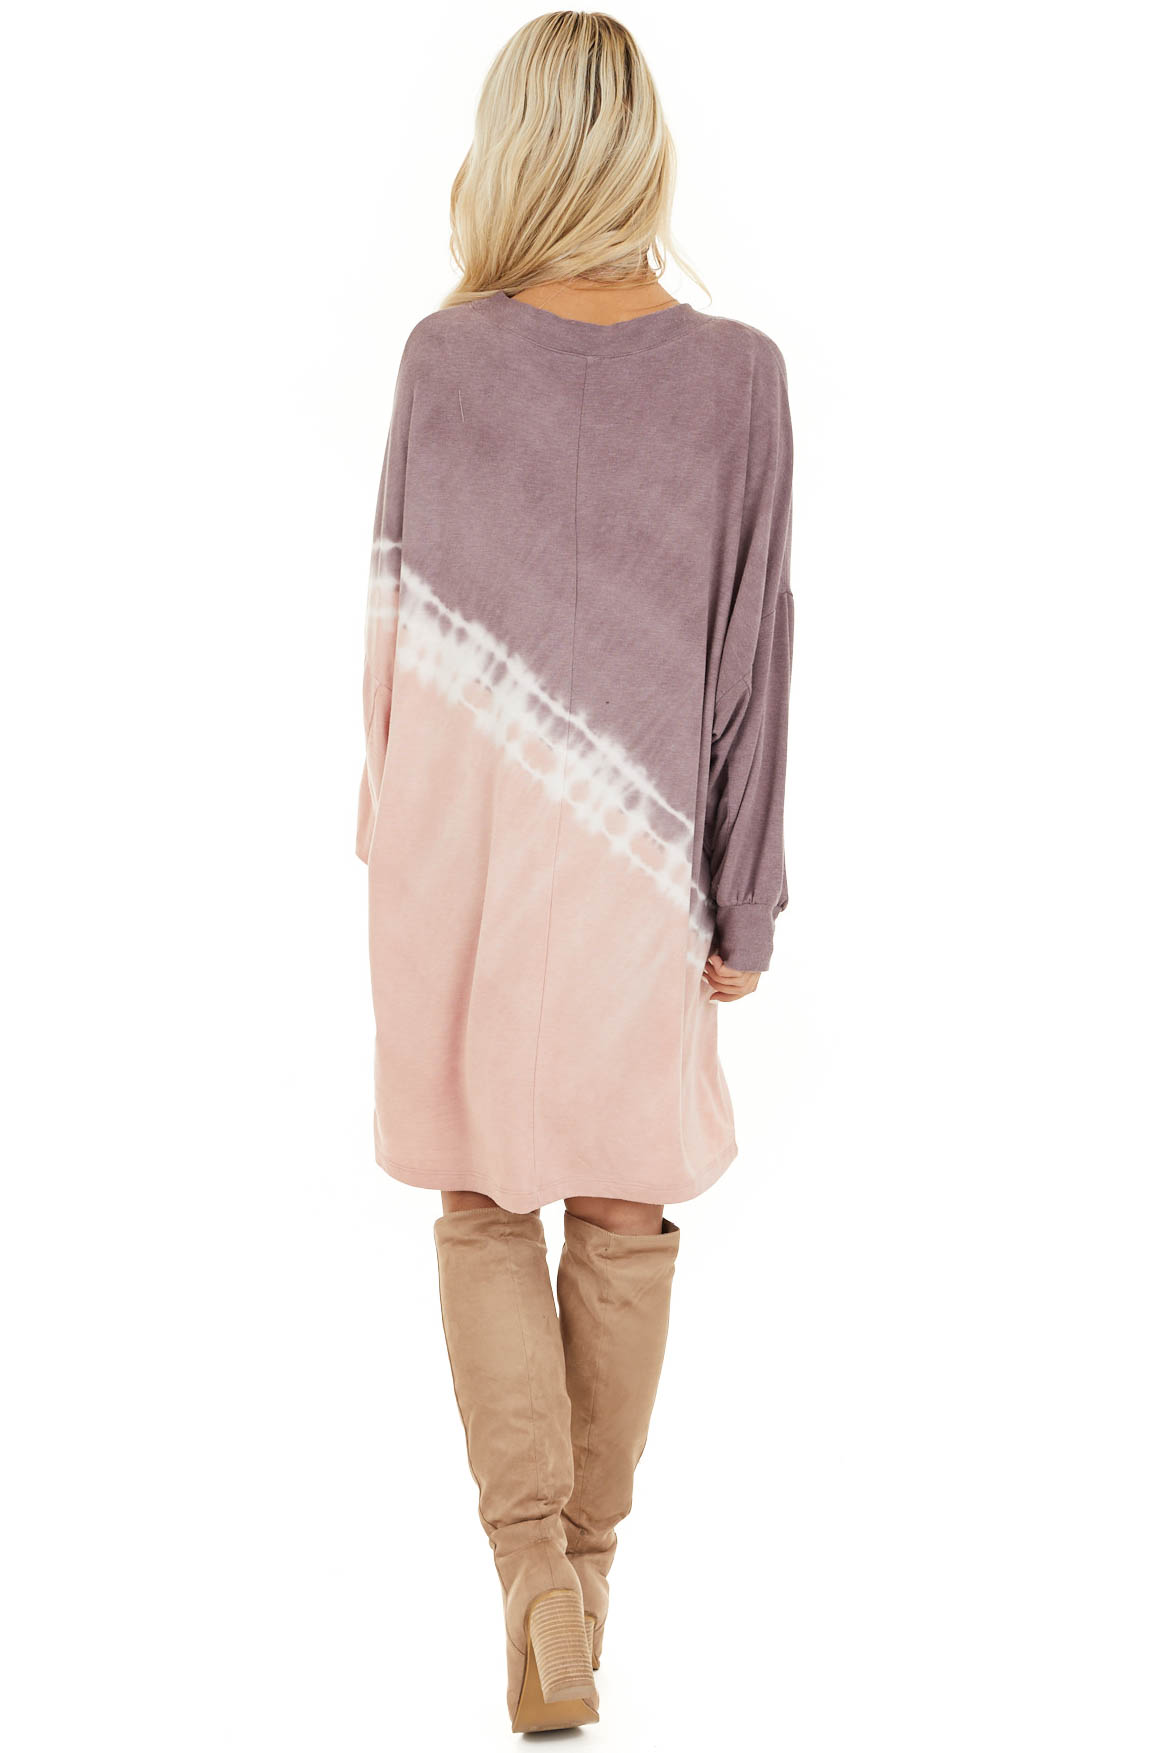 Lavender and Blush Tie Dye Mini Dress with Long Sleeves back full body